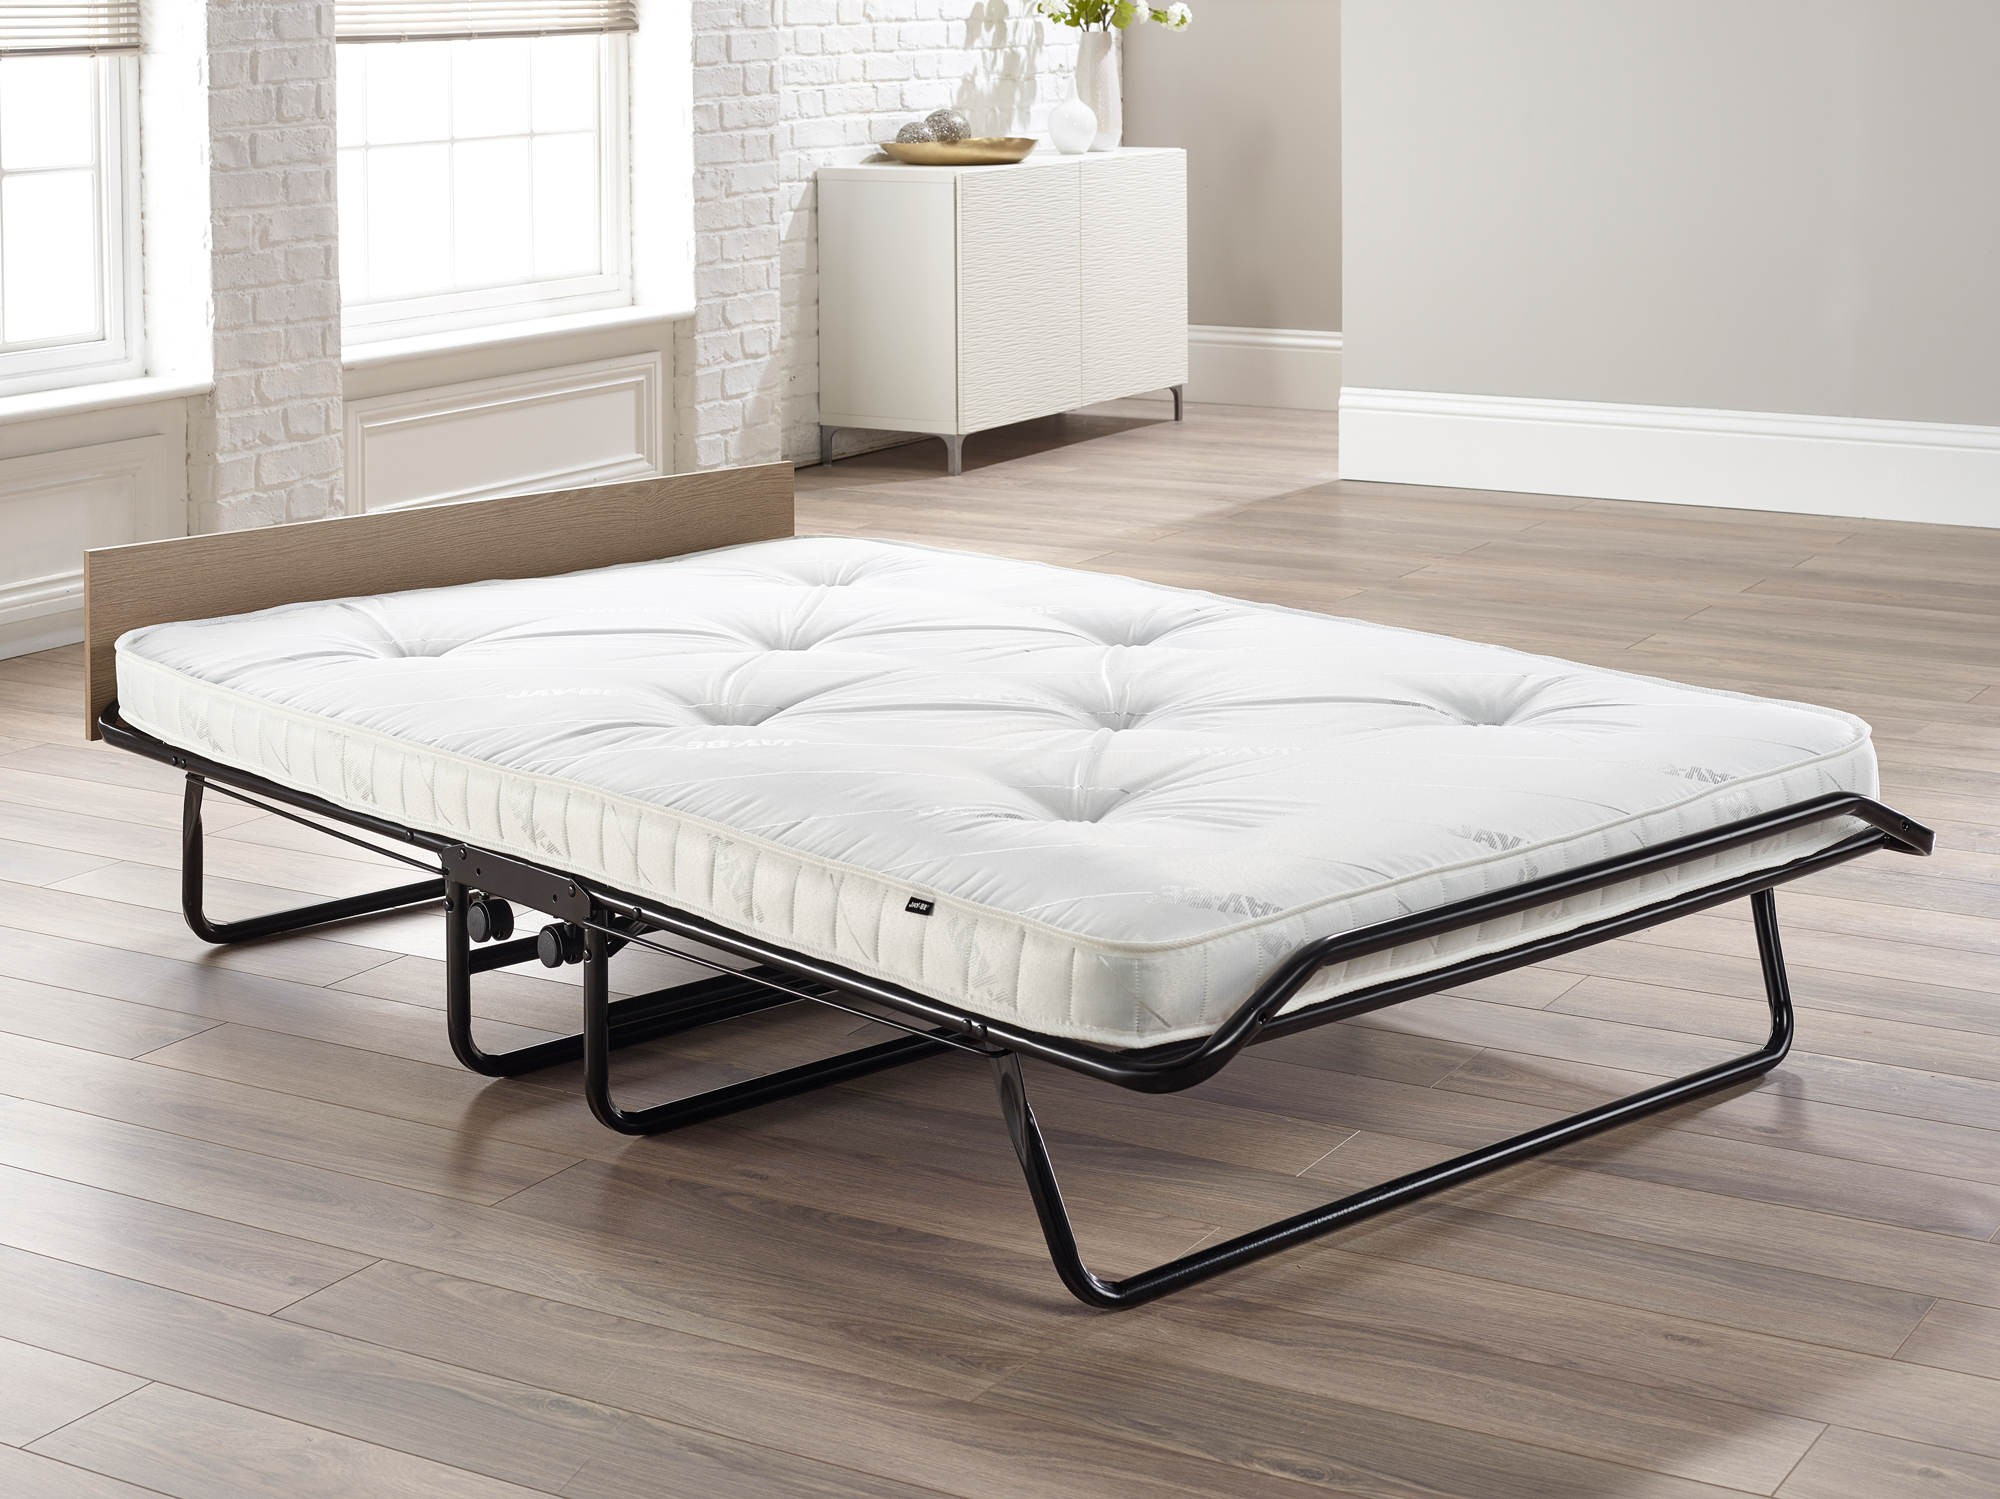 Luxury Rollaway Bed With Spring Mattress